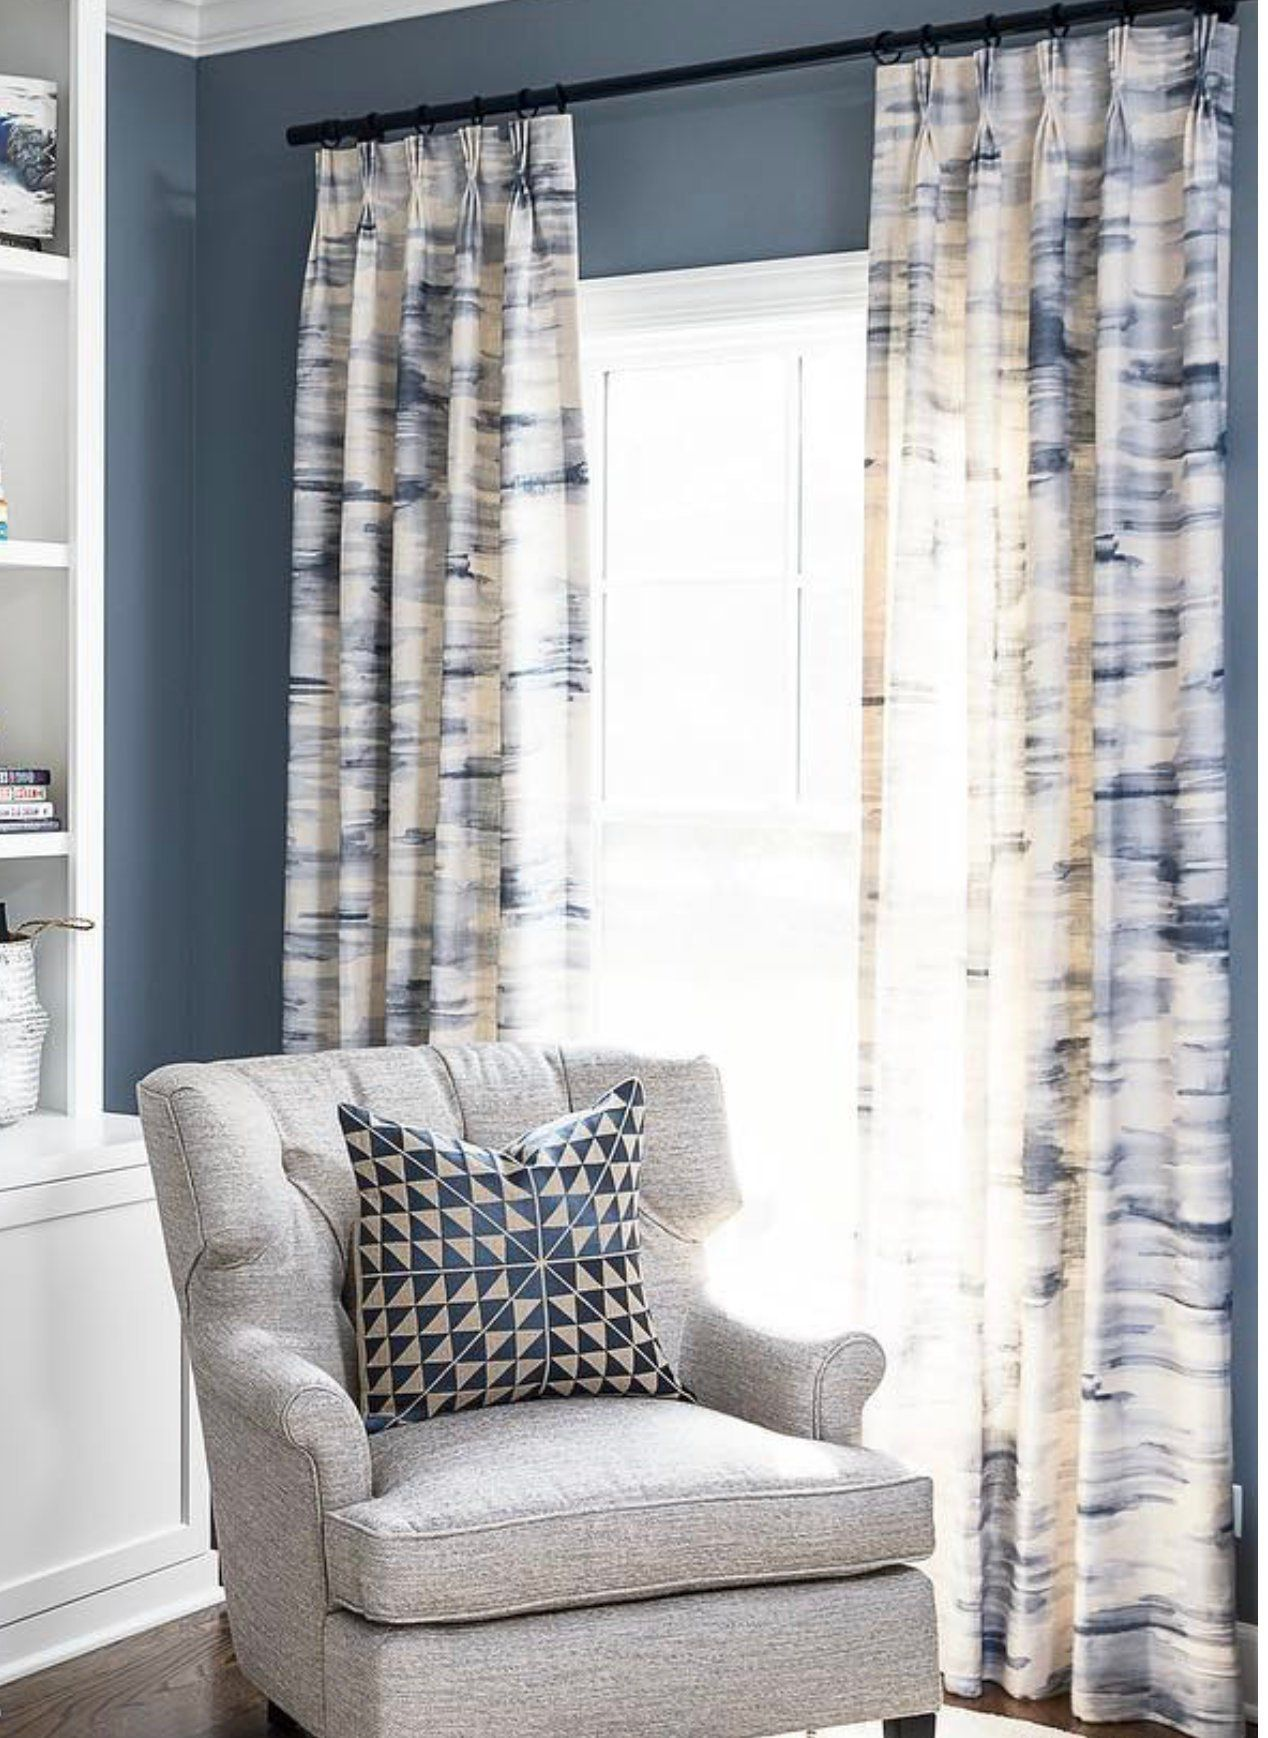 Https Cdn Shopify Com S Files 1 2969 7892 Products Il Fullxfull 1707312934 450k 1024x1 In 2020 Blue Curtains Living Room Navy And White Curtains Curtains